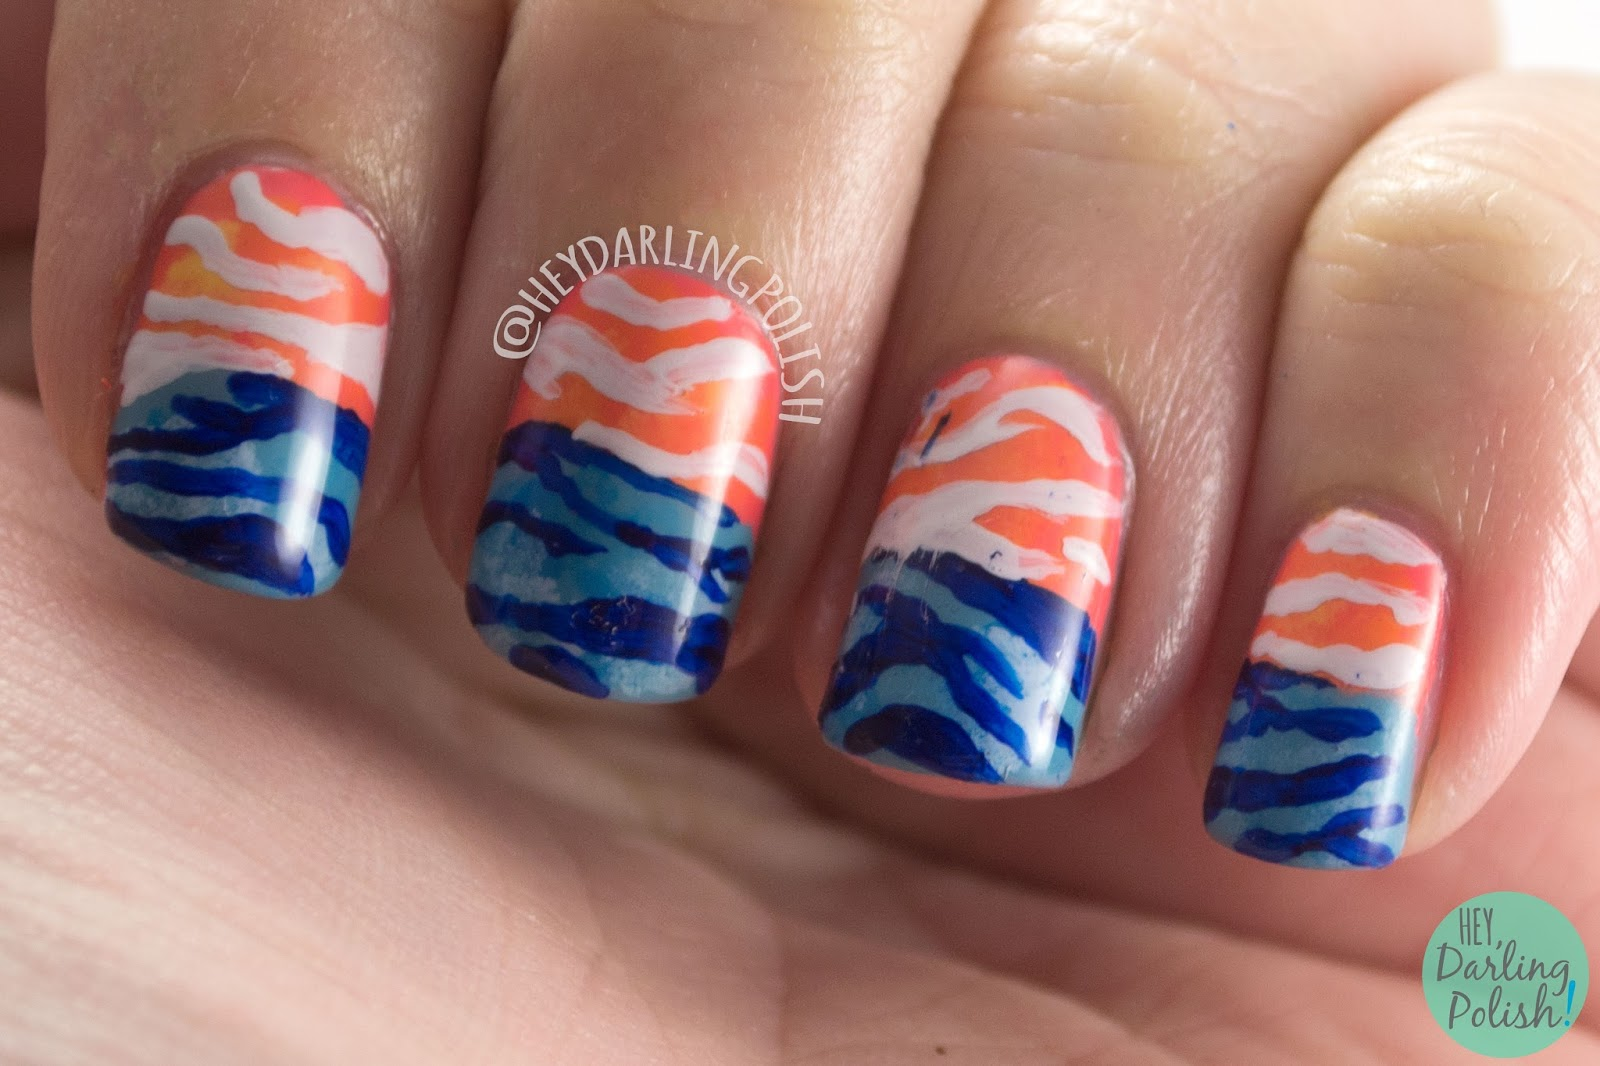 nails, nail art, nail polish, hey darling polish, blue, orange, stripes, zebra, 2015 cnt 31 day challenge, pattern